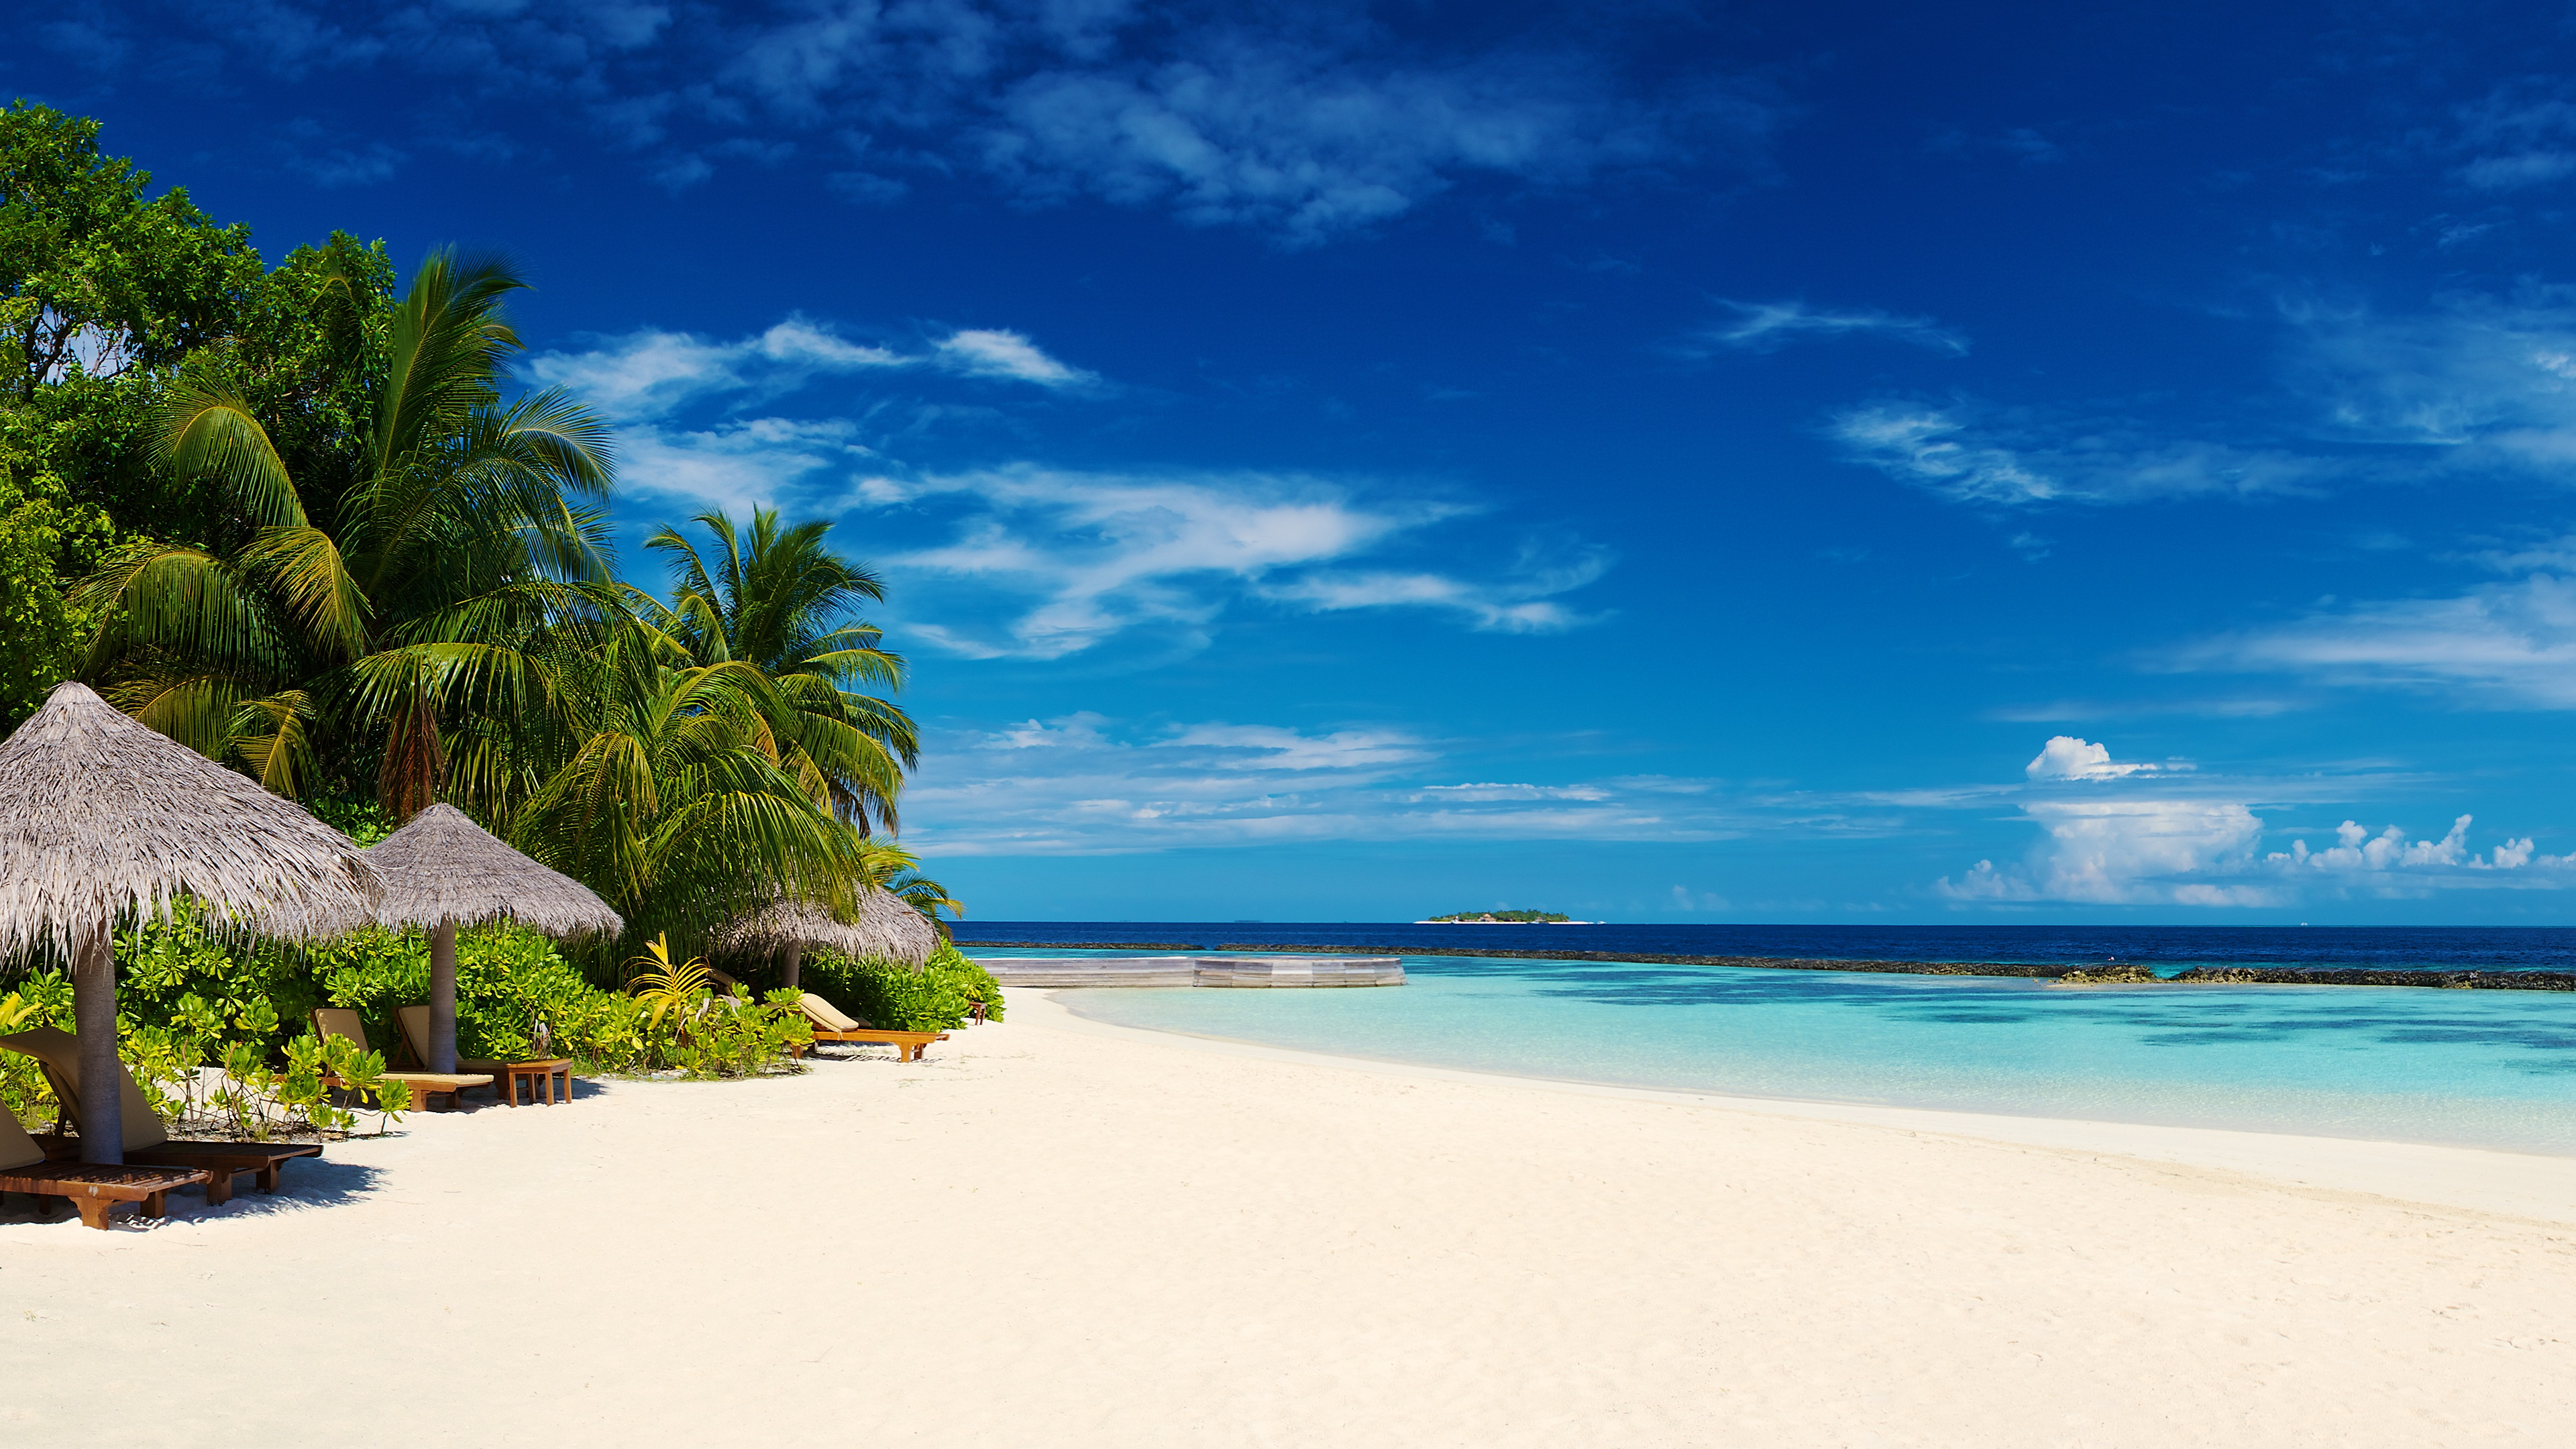 Sorry, that tropical beach desktop are